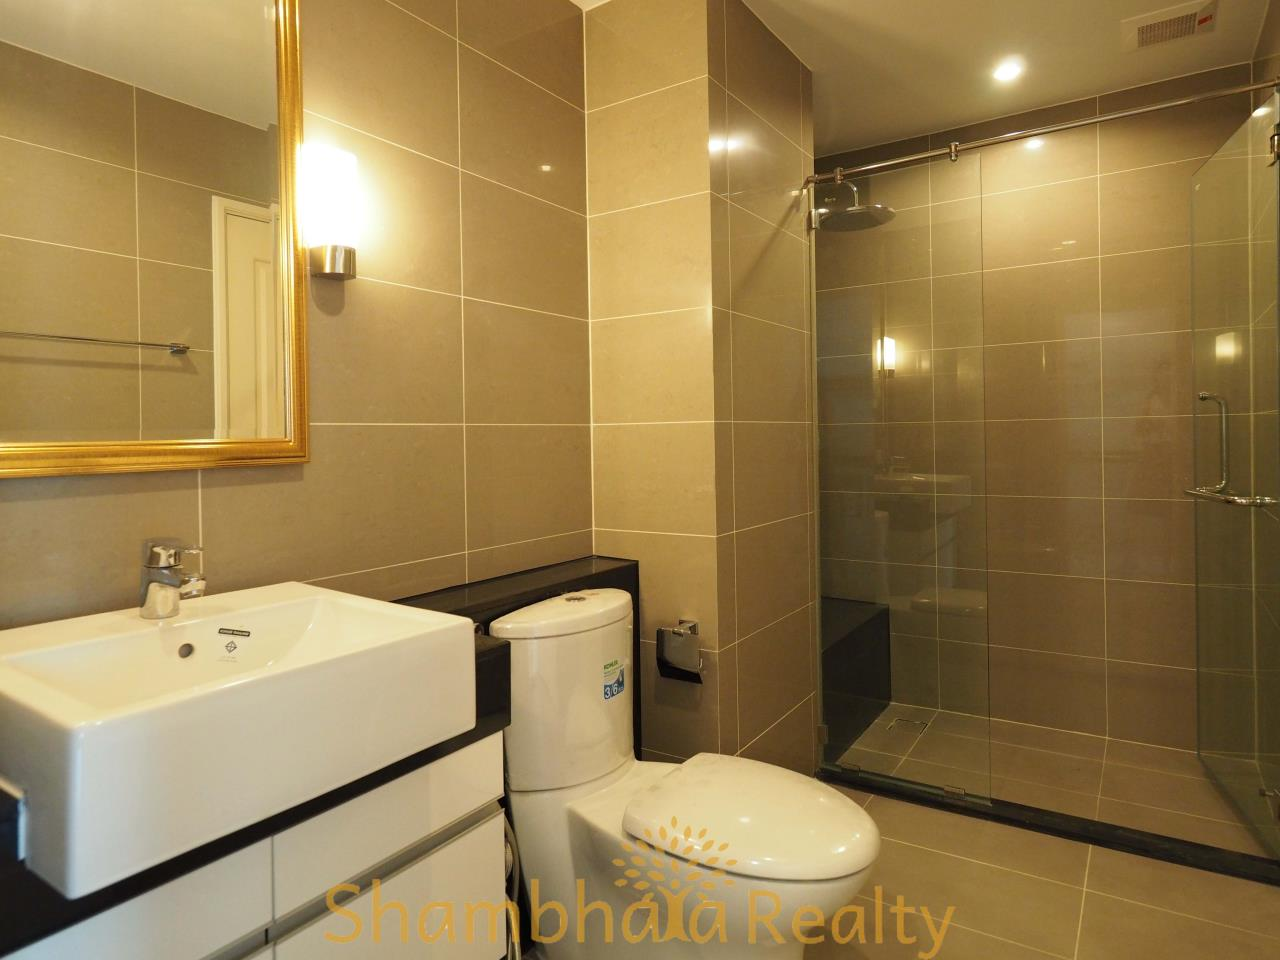 Shambhala Realty Agency's Supalai Wellington Condominium for Rent in Rama 9 1